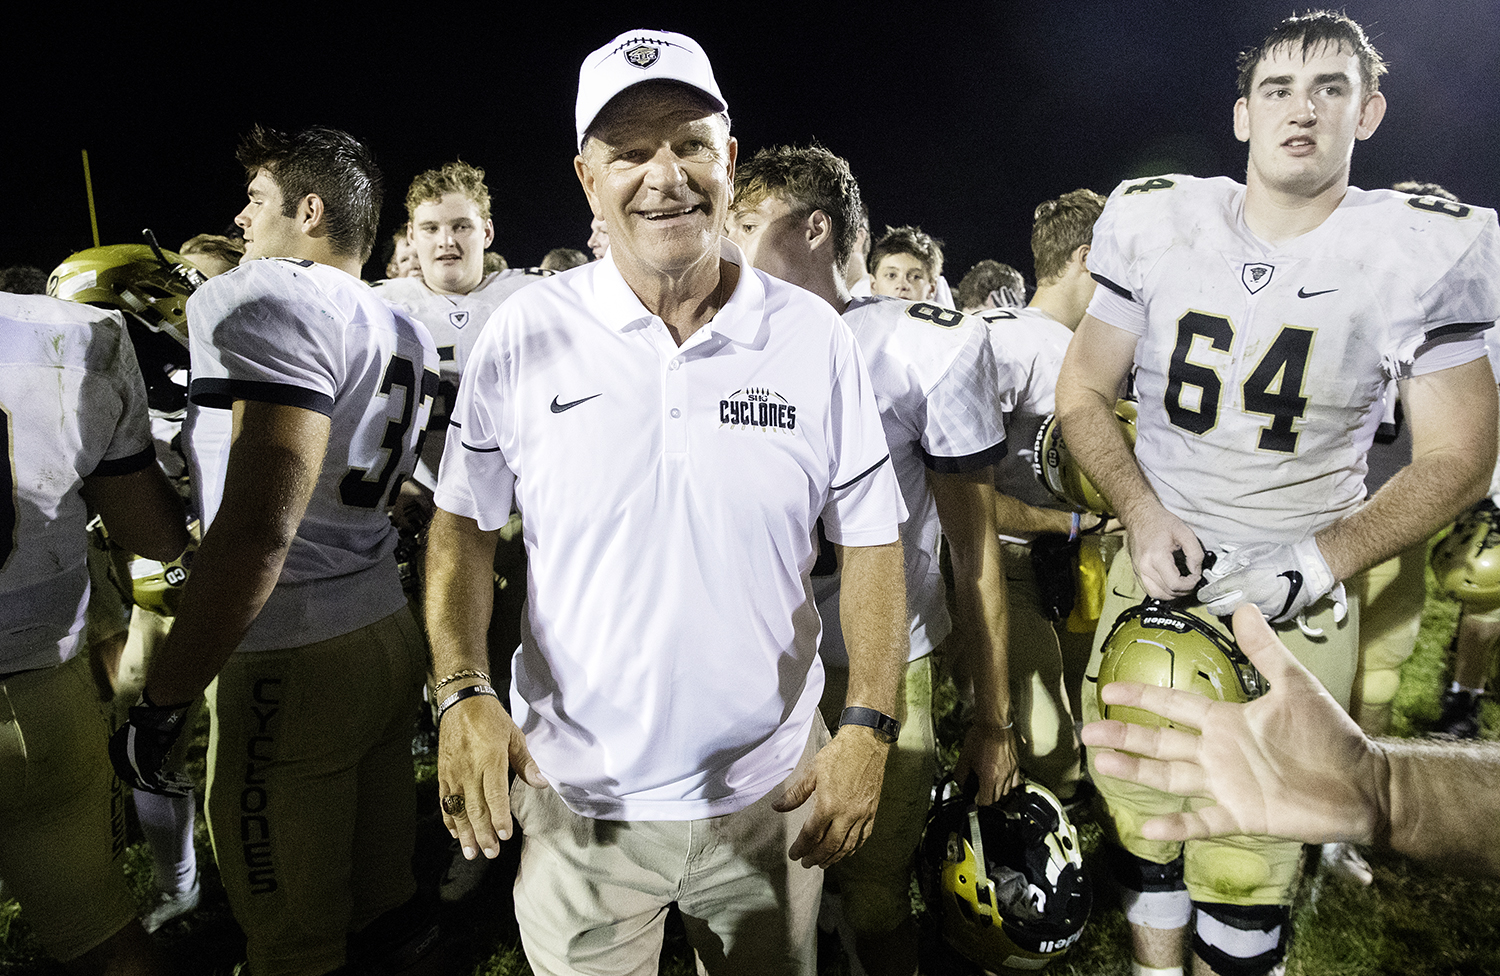 Sacred Heart-Griffin head coach Ken Leonard smiles as he receives congratulations after defeating Southeast and tying the all-time win record for an Illinois high school football coach Friday, Sept. 14, 2018. [Ted Schurter/The State Journal-Register]